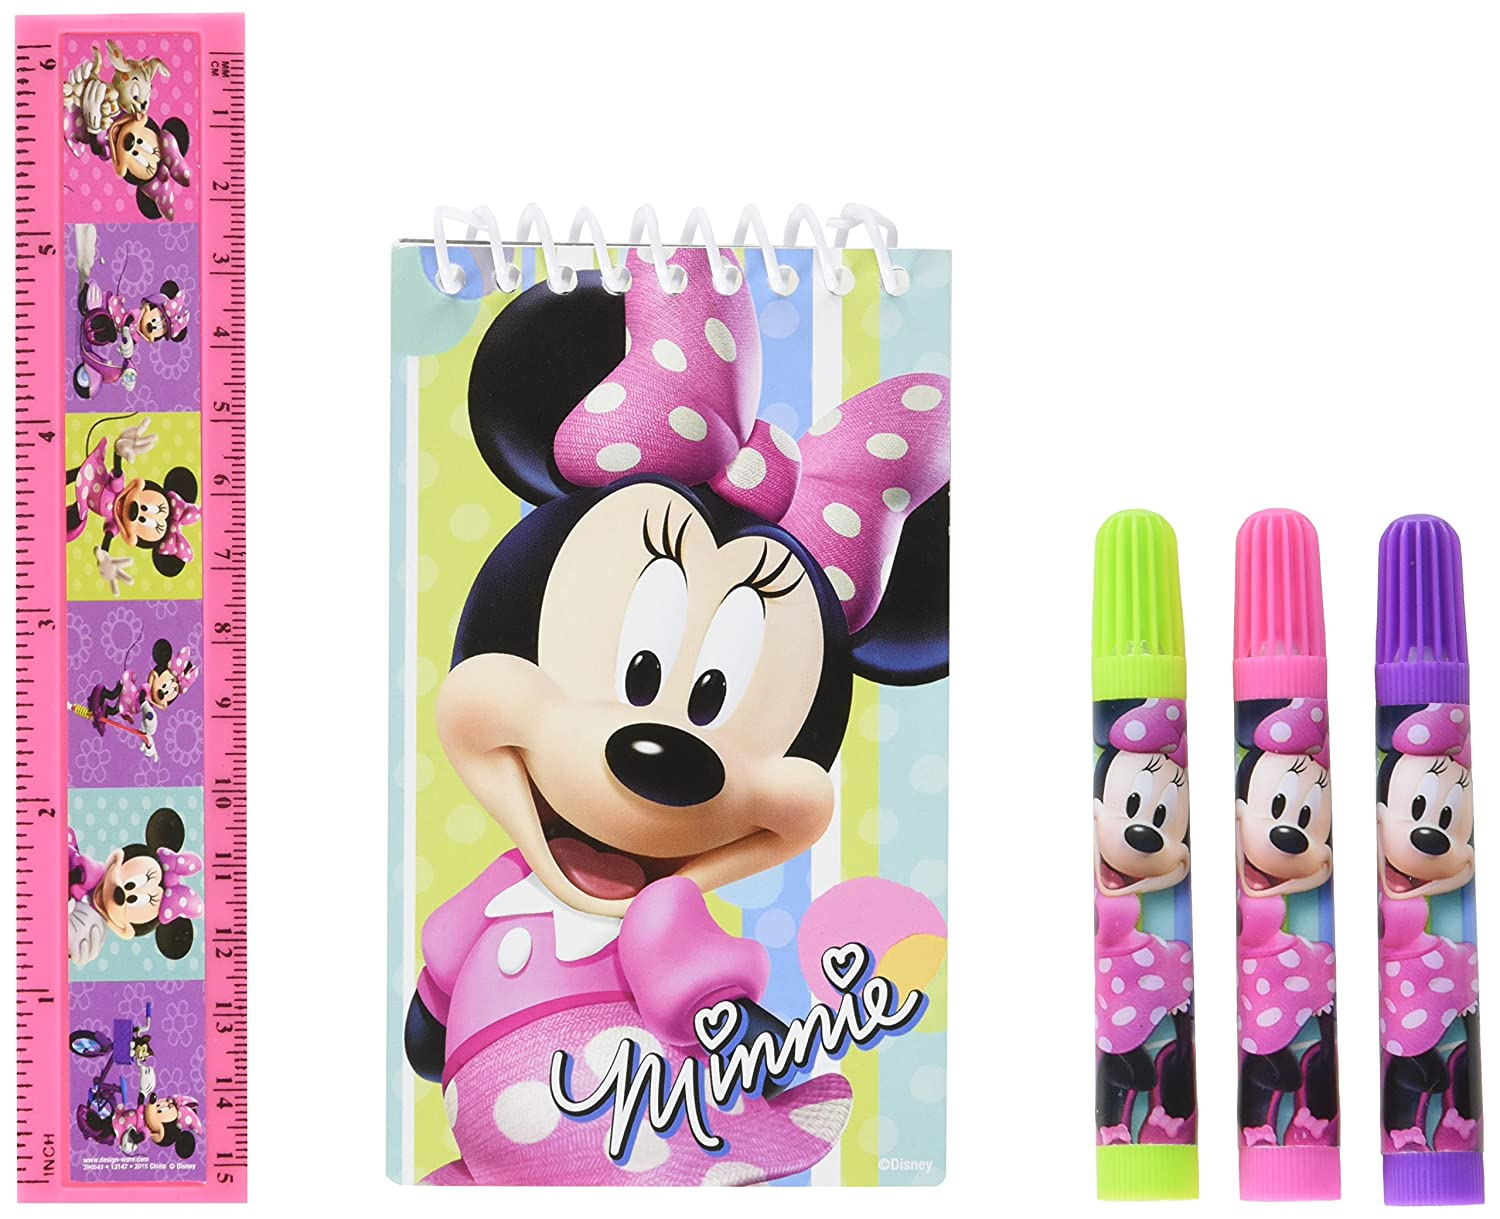 396641 Stationery Sets Party Accessory TradeMart Inc Disney Minnie Mouse Collection